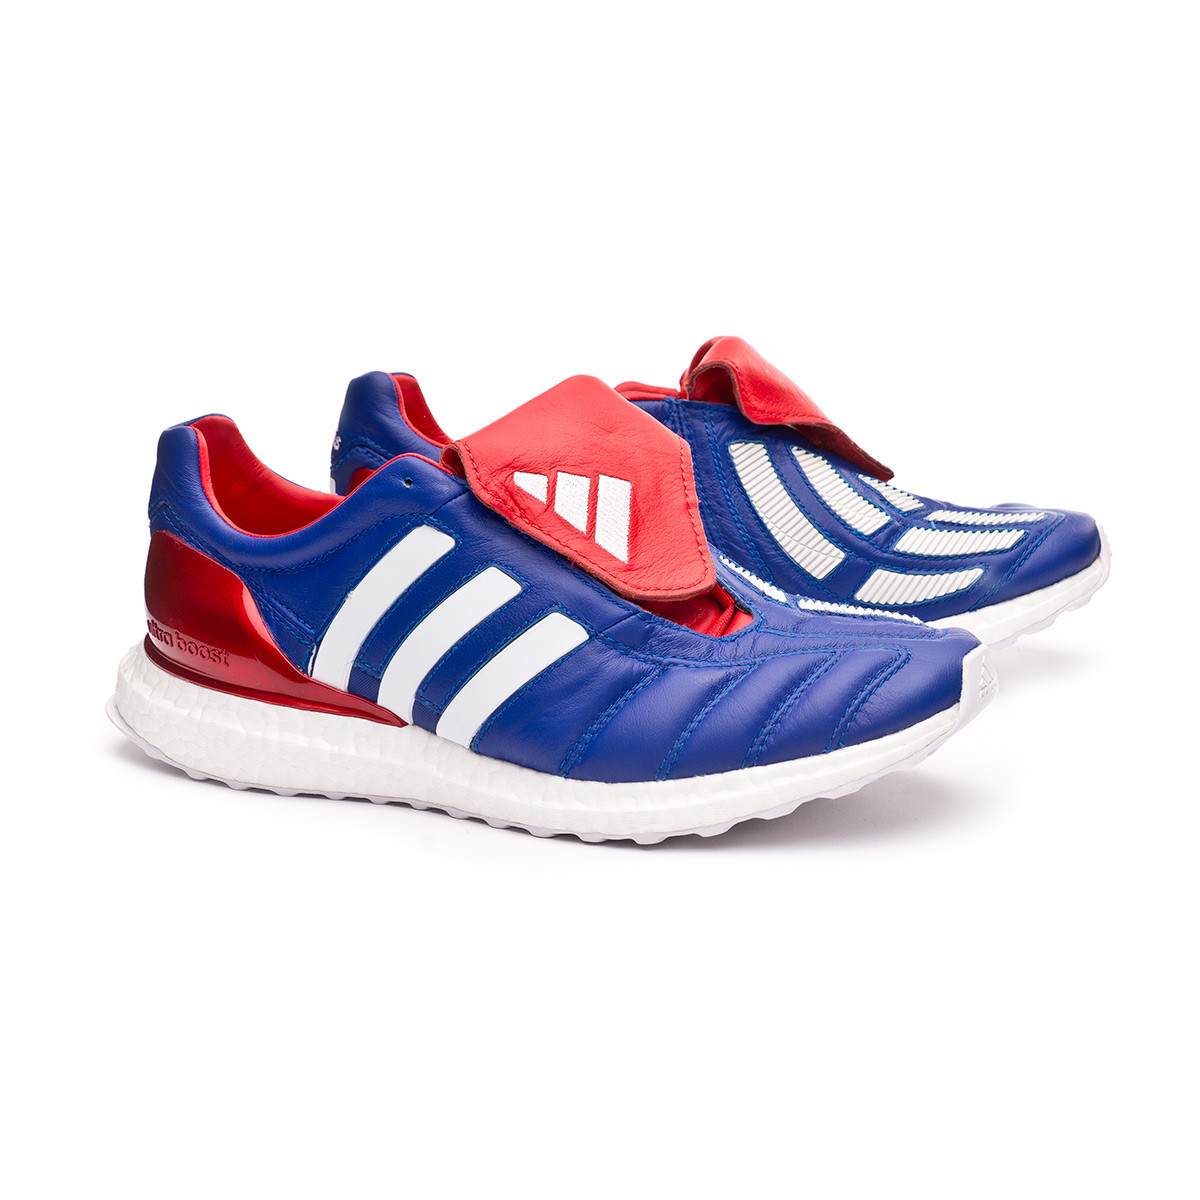 emocionante Renunciar Volver a llamar  Trainers adidas Predator Mania TR Japan blue-Red-White - Football store  Fútbol Emotion